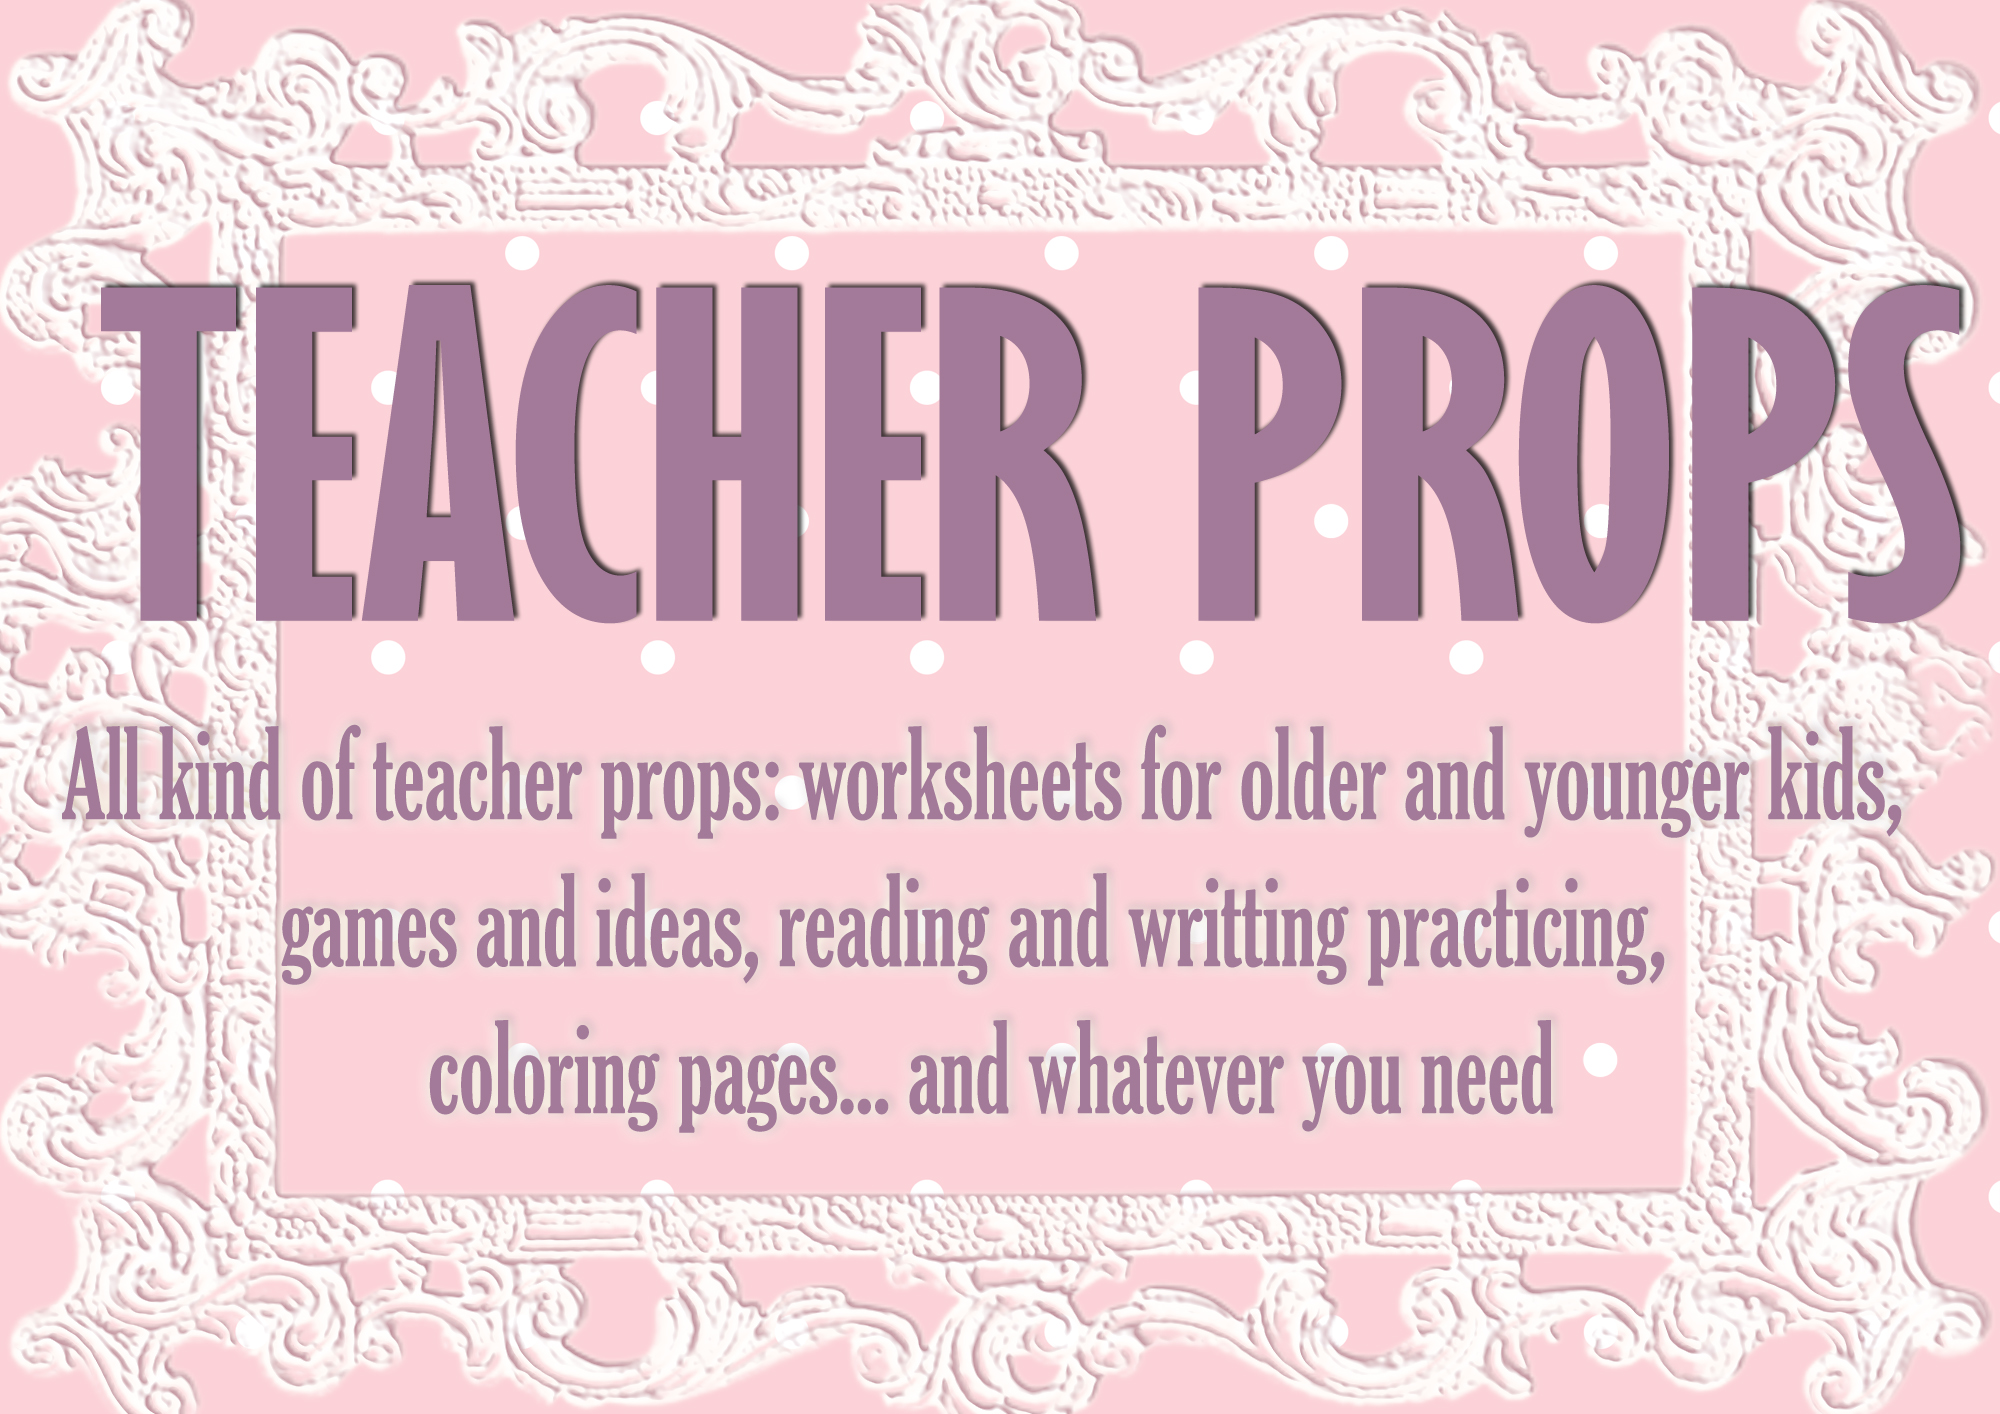 Make all kind of teacher props by Jovana023